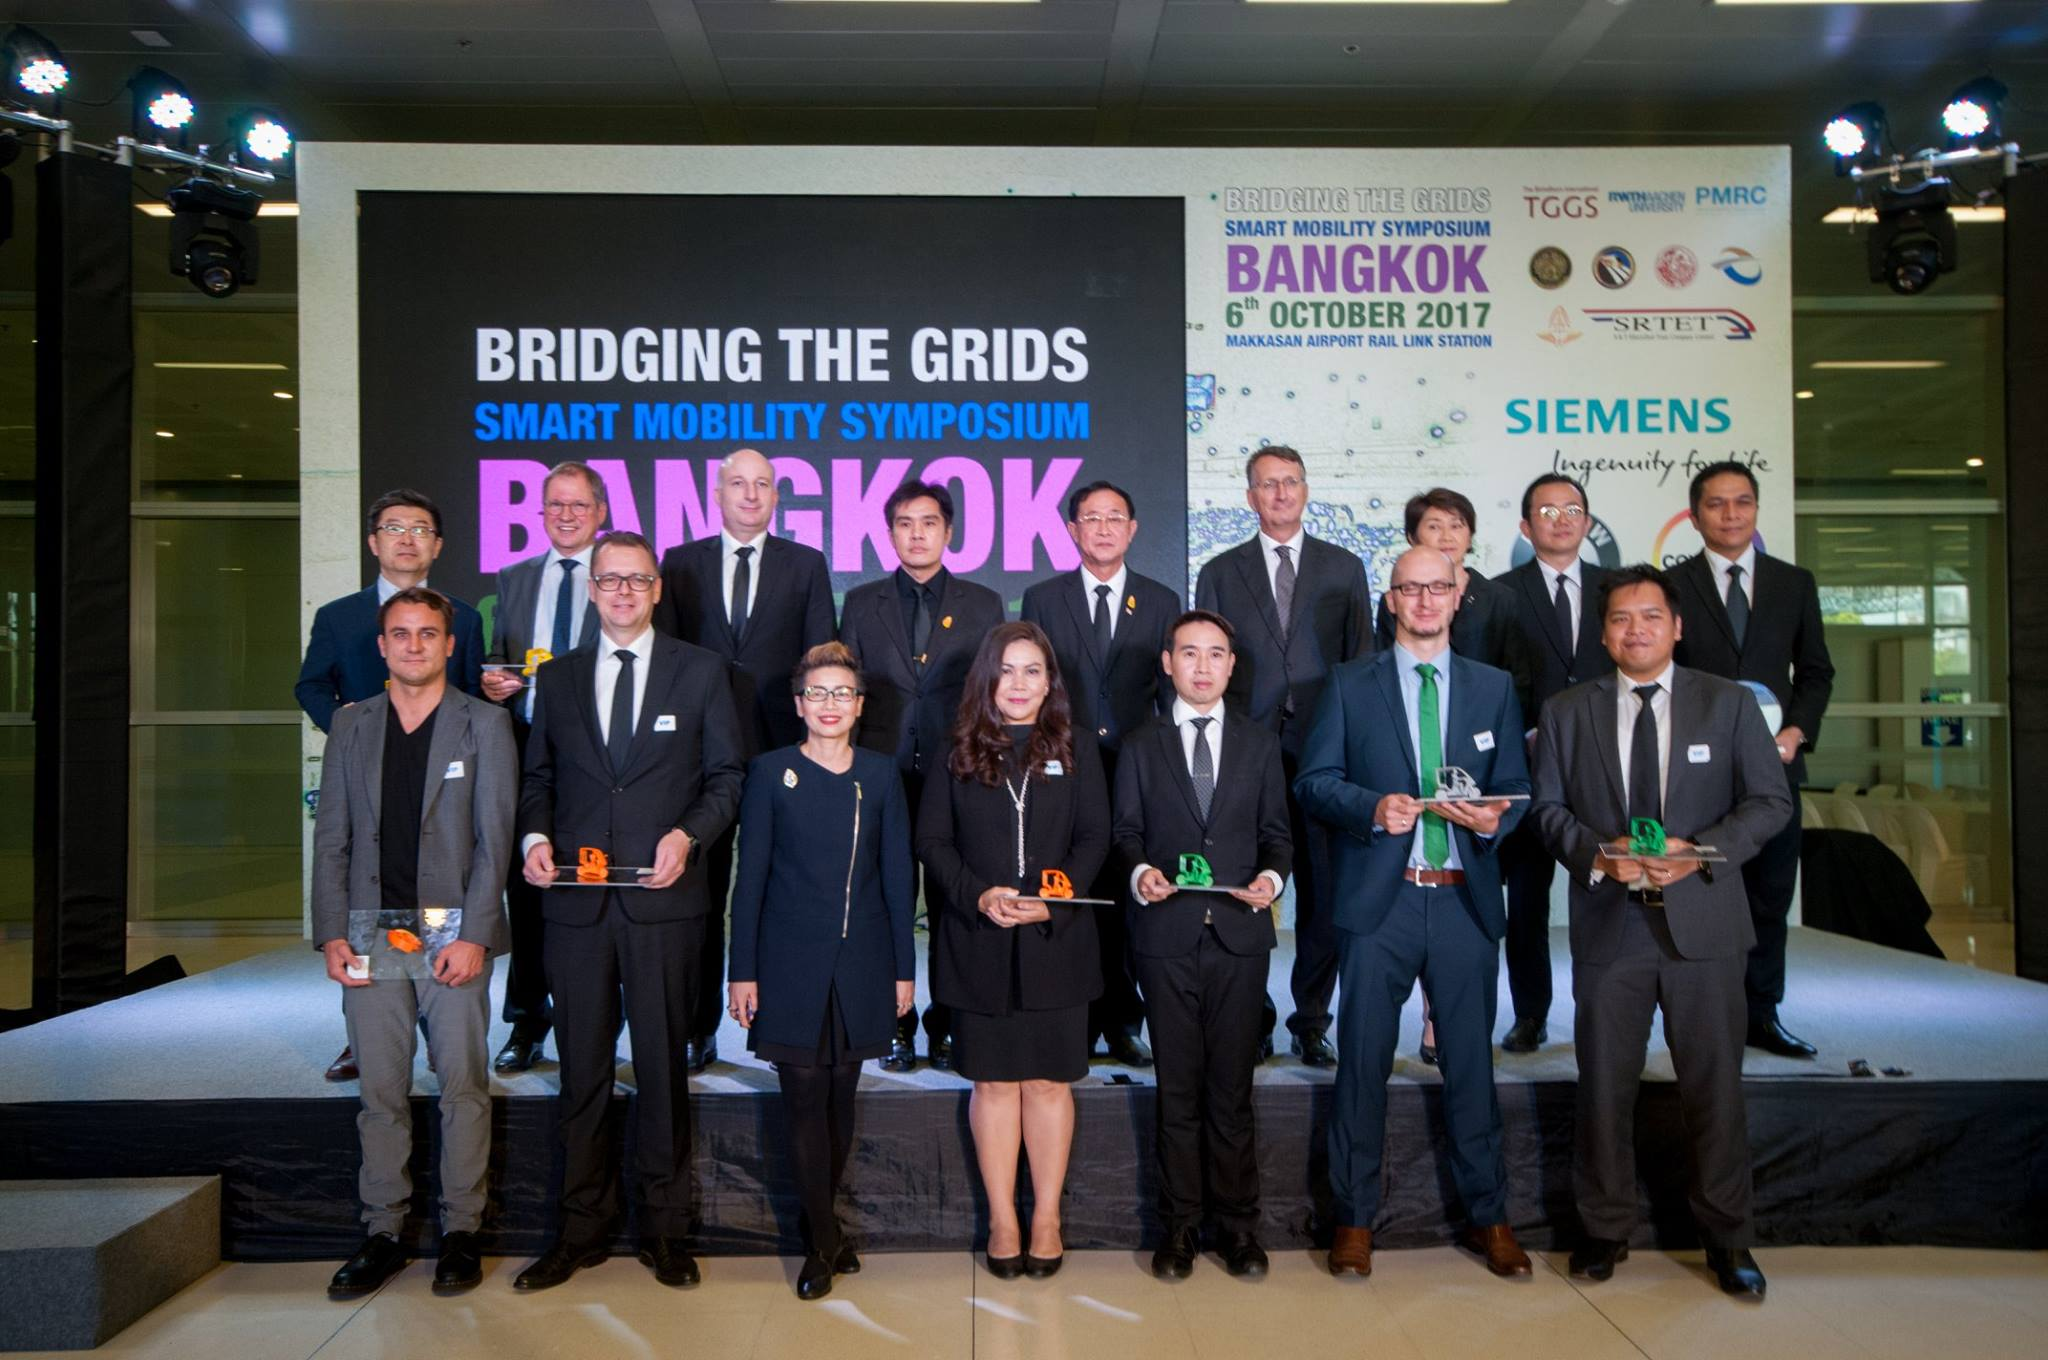 """Bridging the Grids"" - the 1st Smart Mobility Symposium in Bangkok, Thailand"